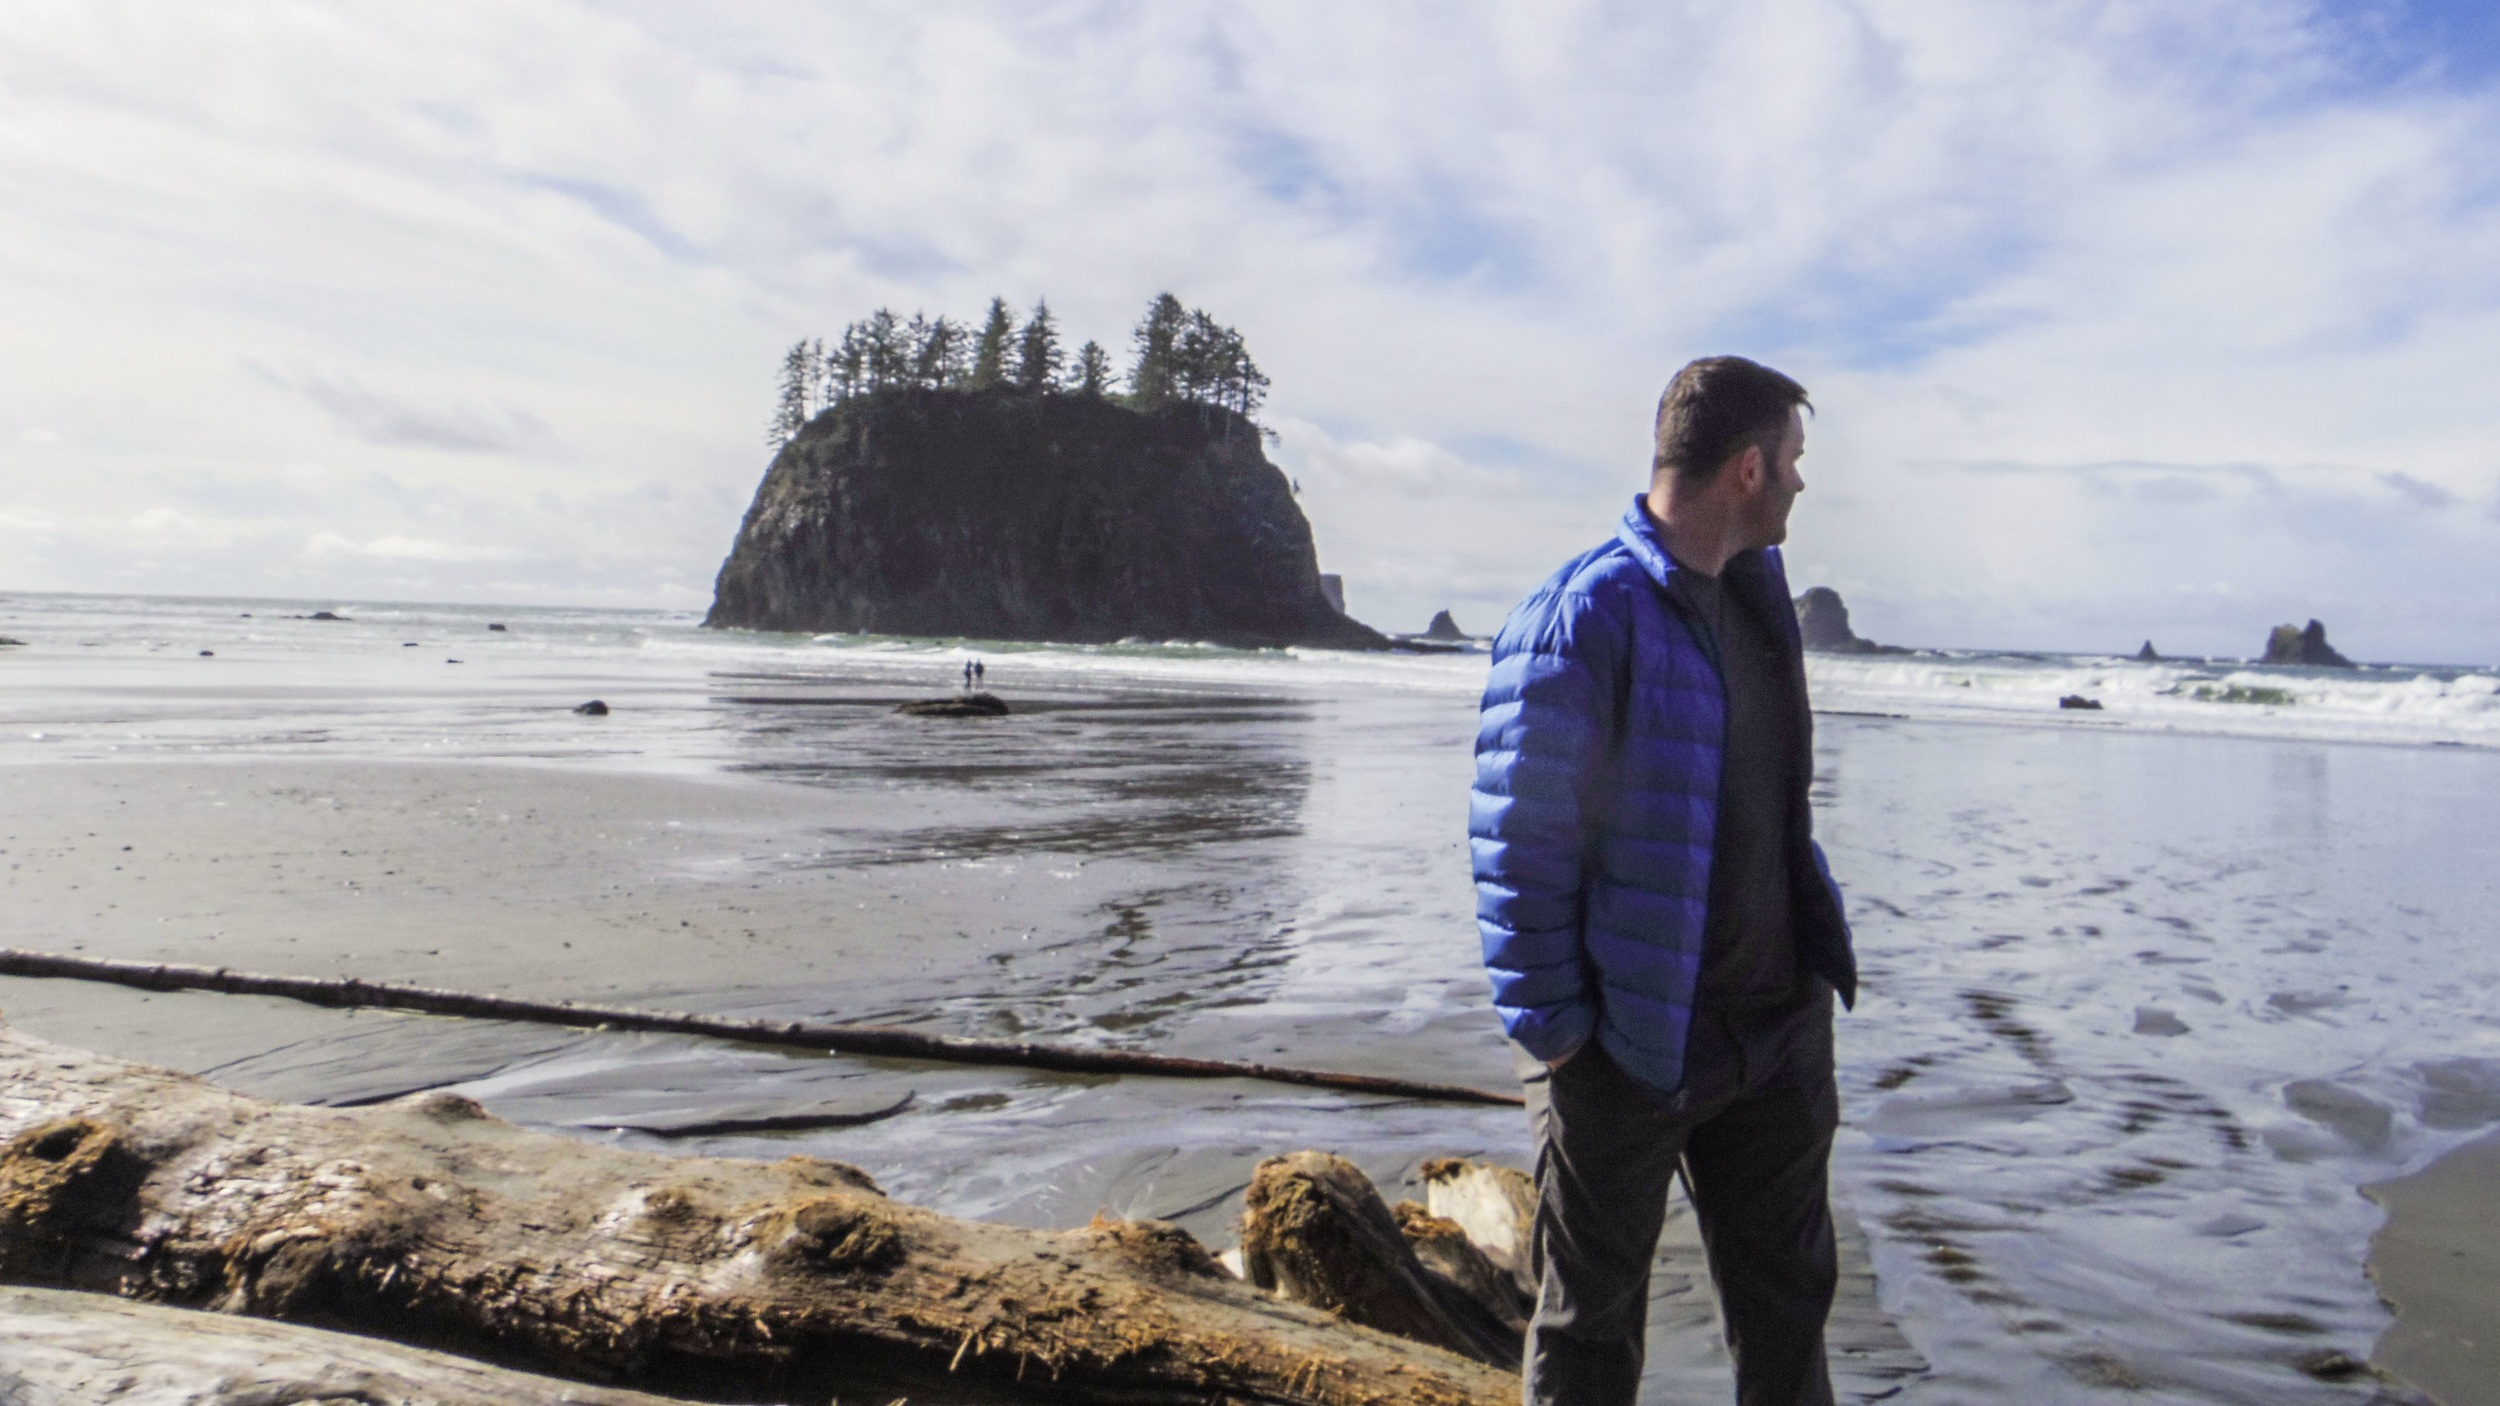 Near La Push, Washington